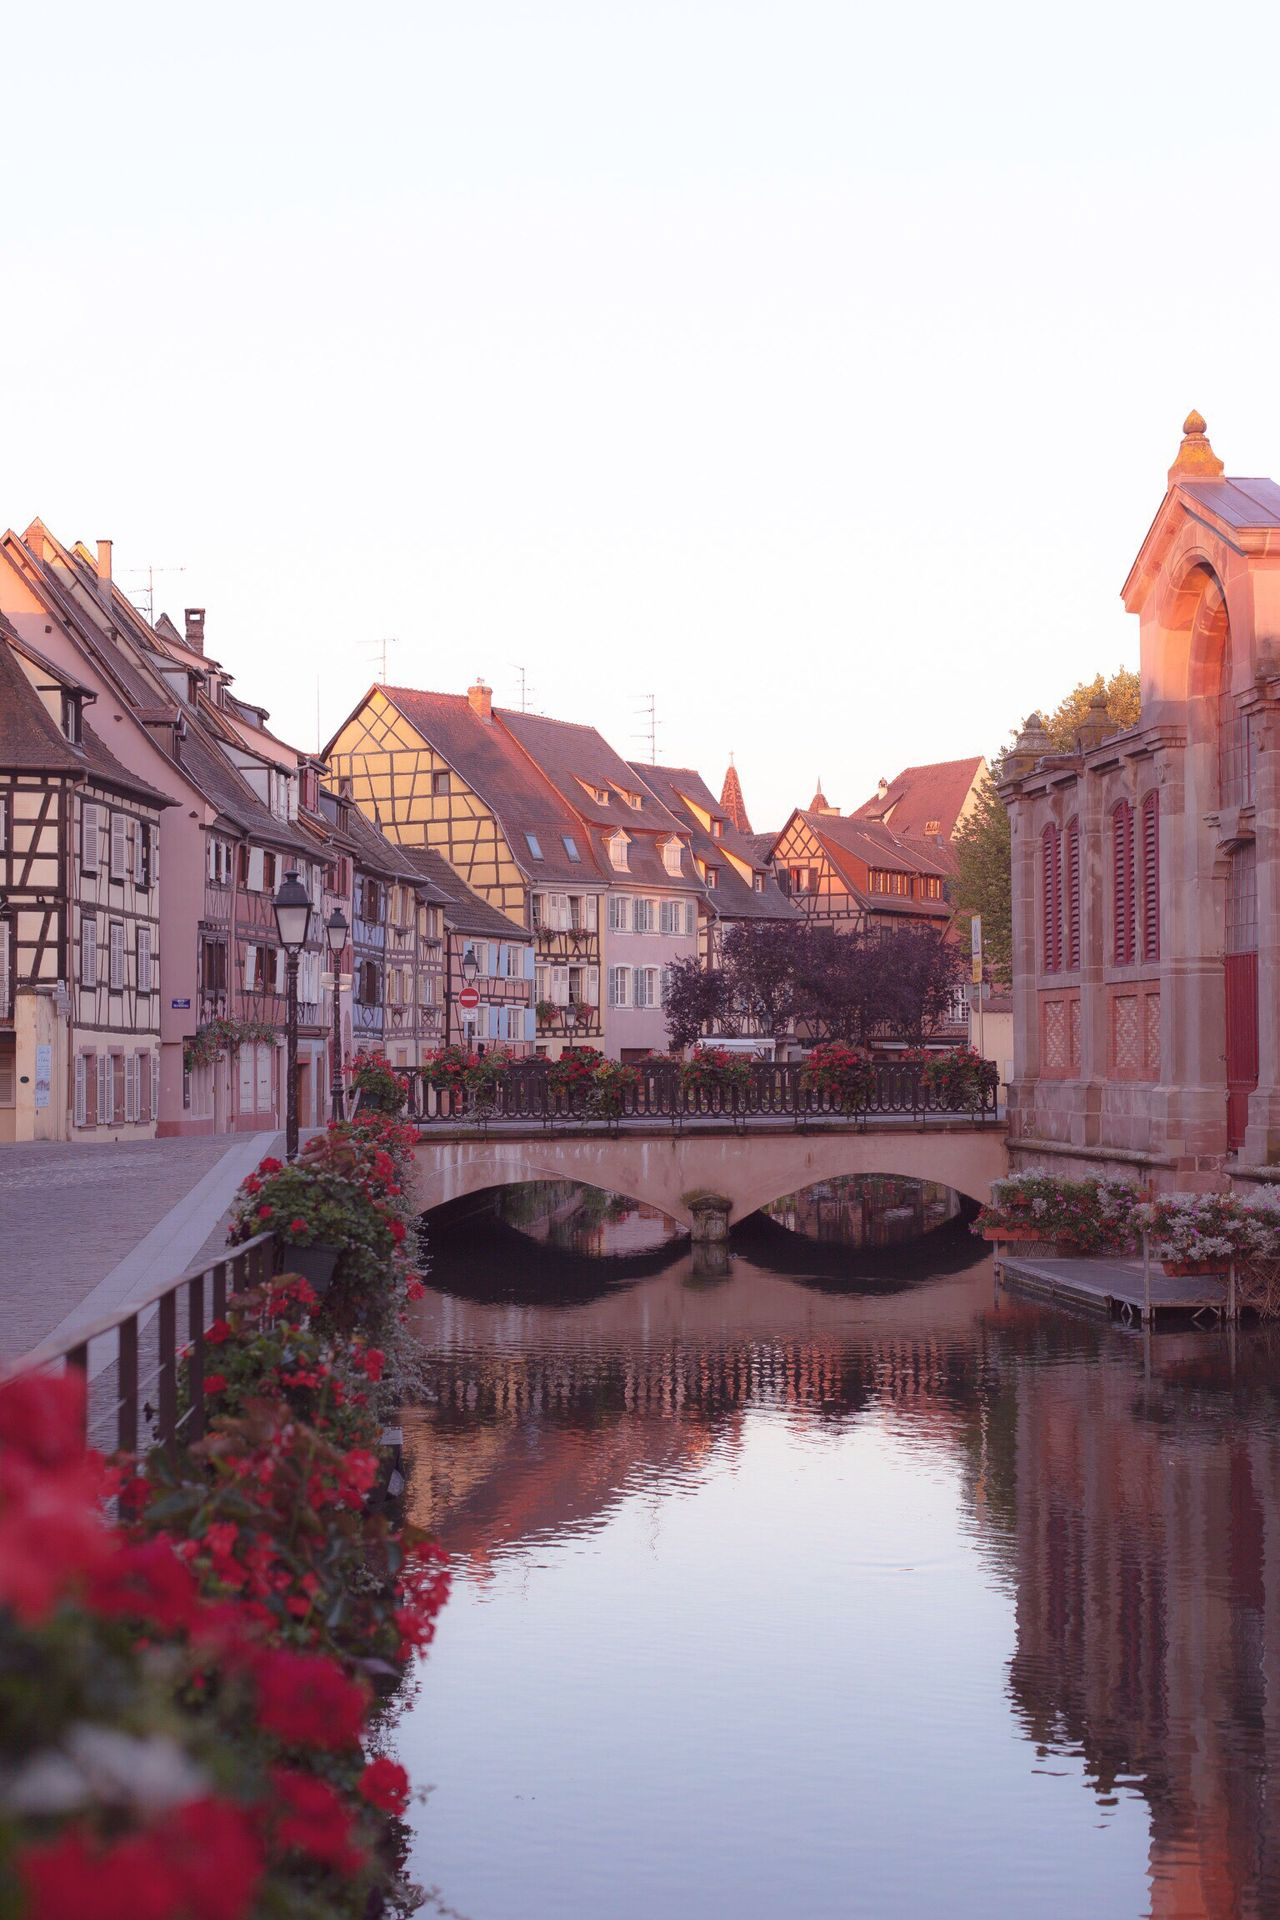 Architecture Built Structure Water Building Exterior Reflection Clear Sky Colmar, Alsace, France No People Day Outdoors Sky